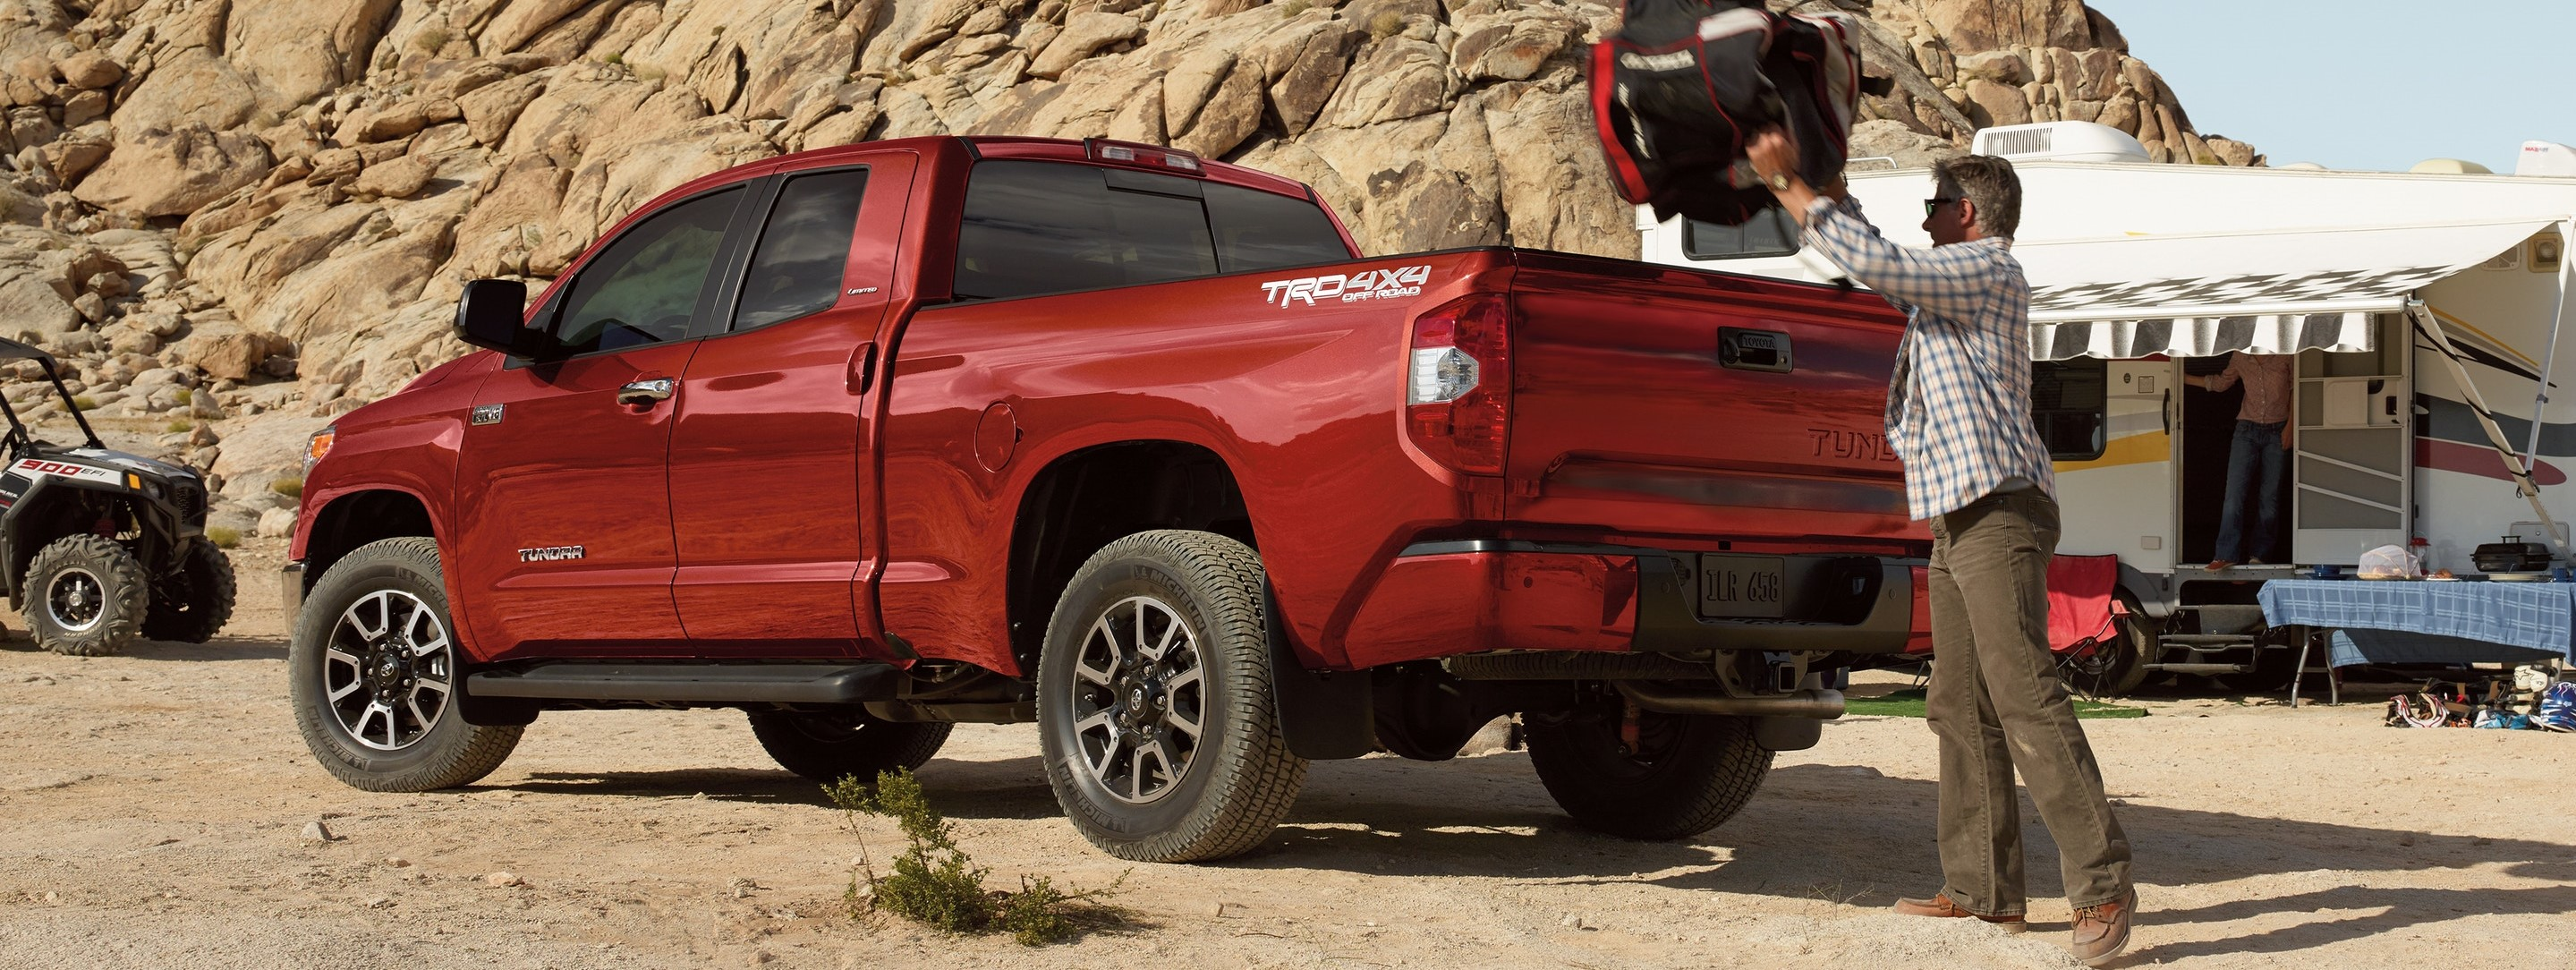 trick your truck performance toyota tundra 2019 red